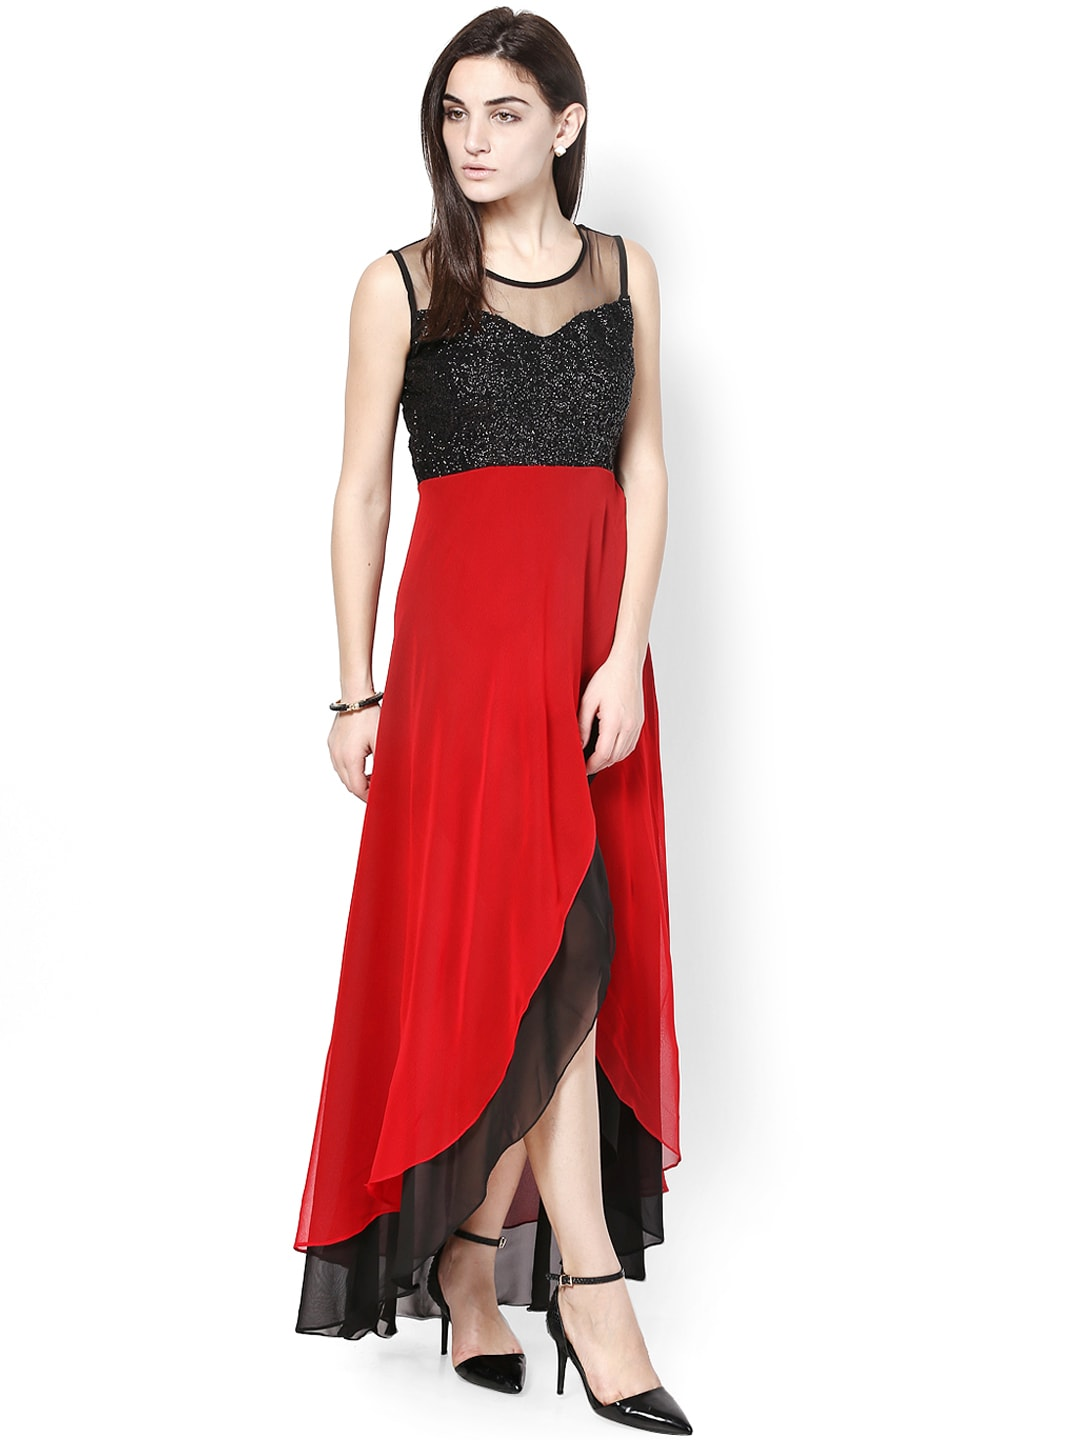 23 amazing myntra women dresses � playzoacom